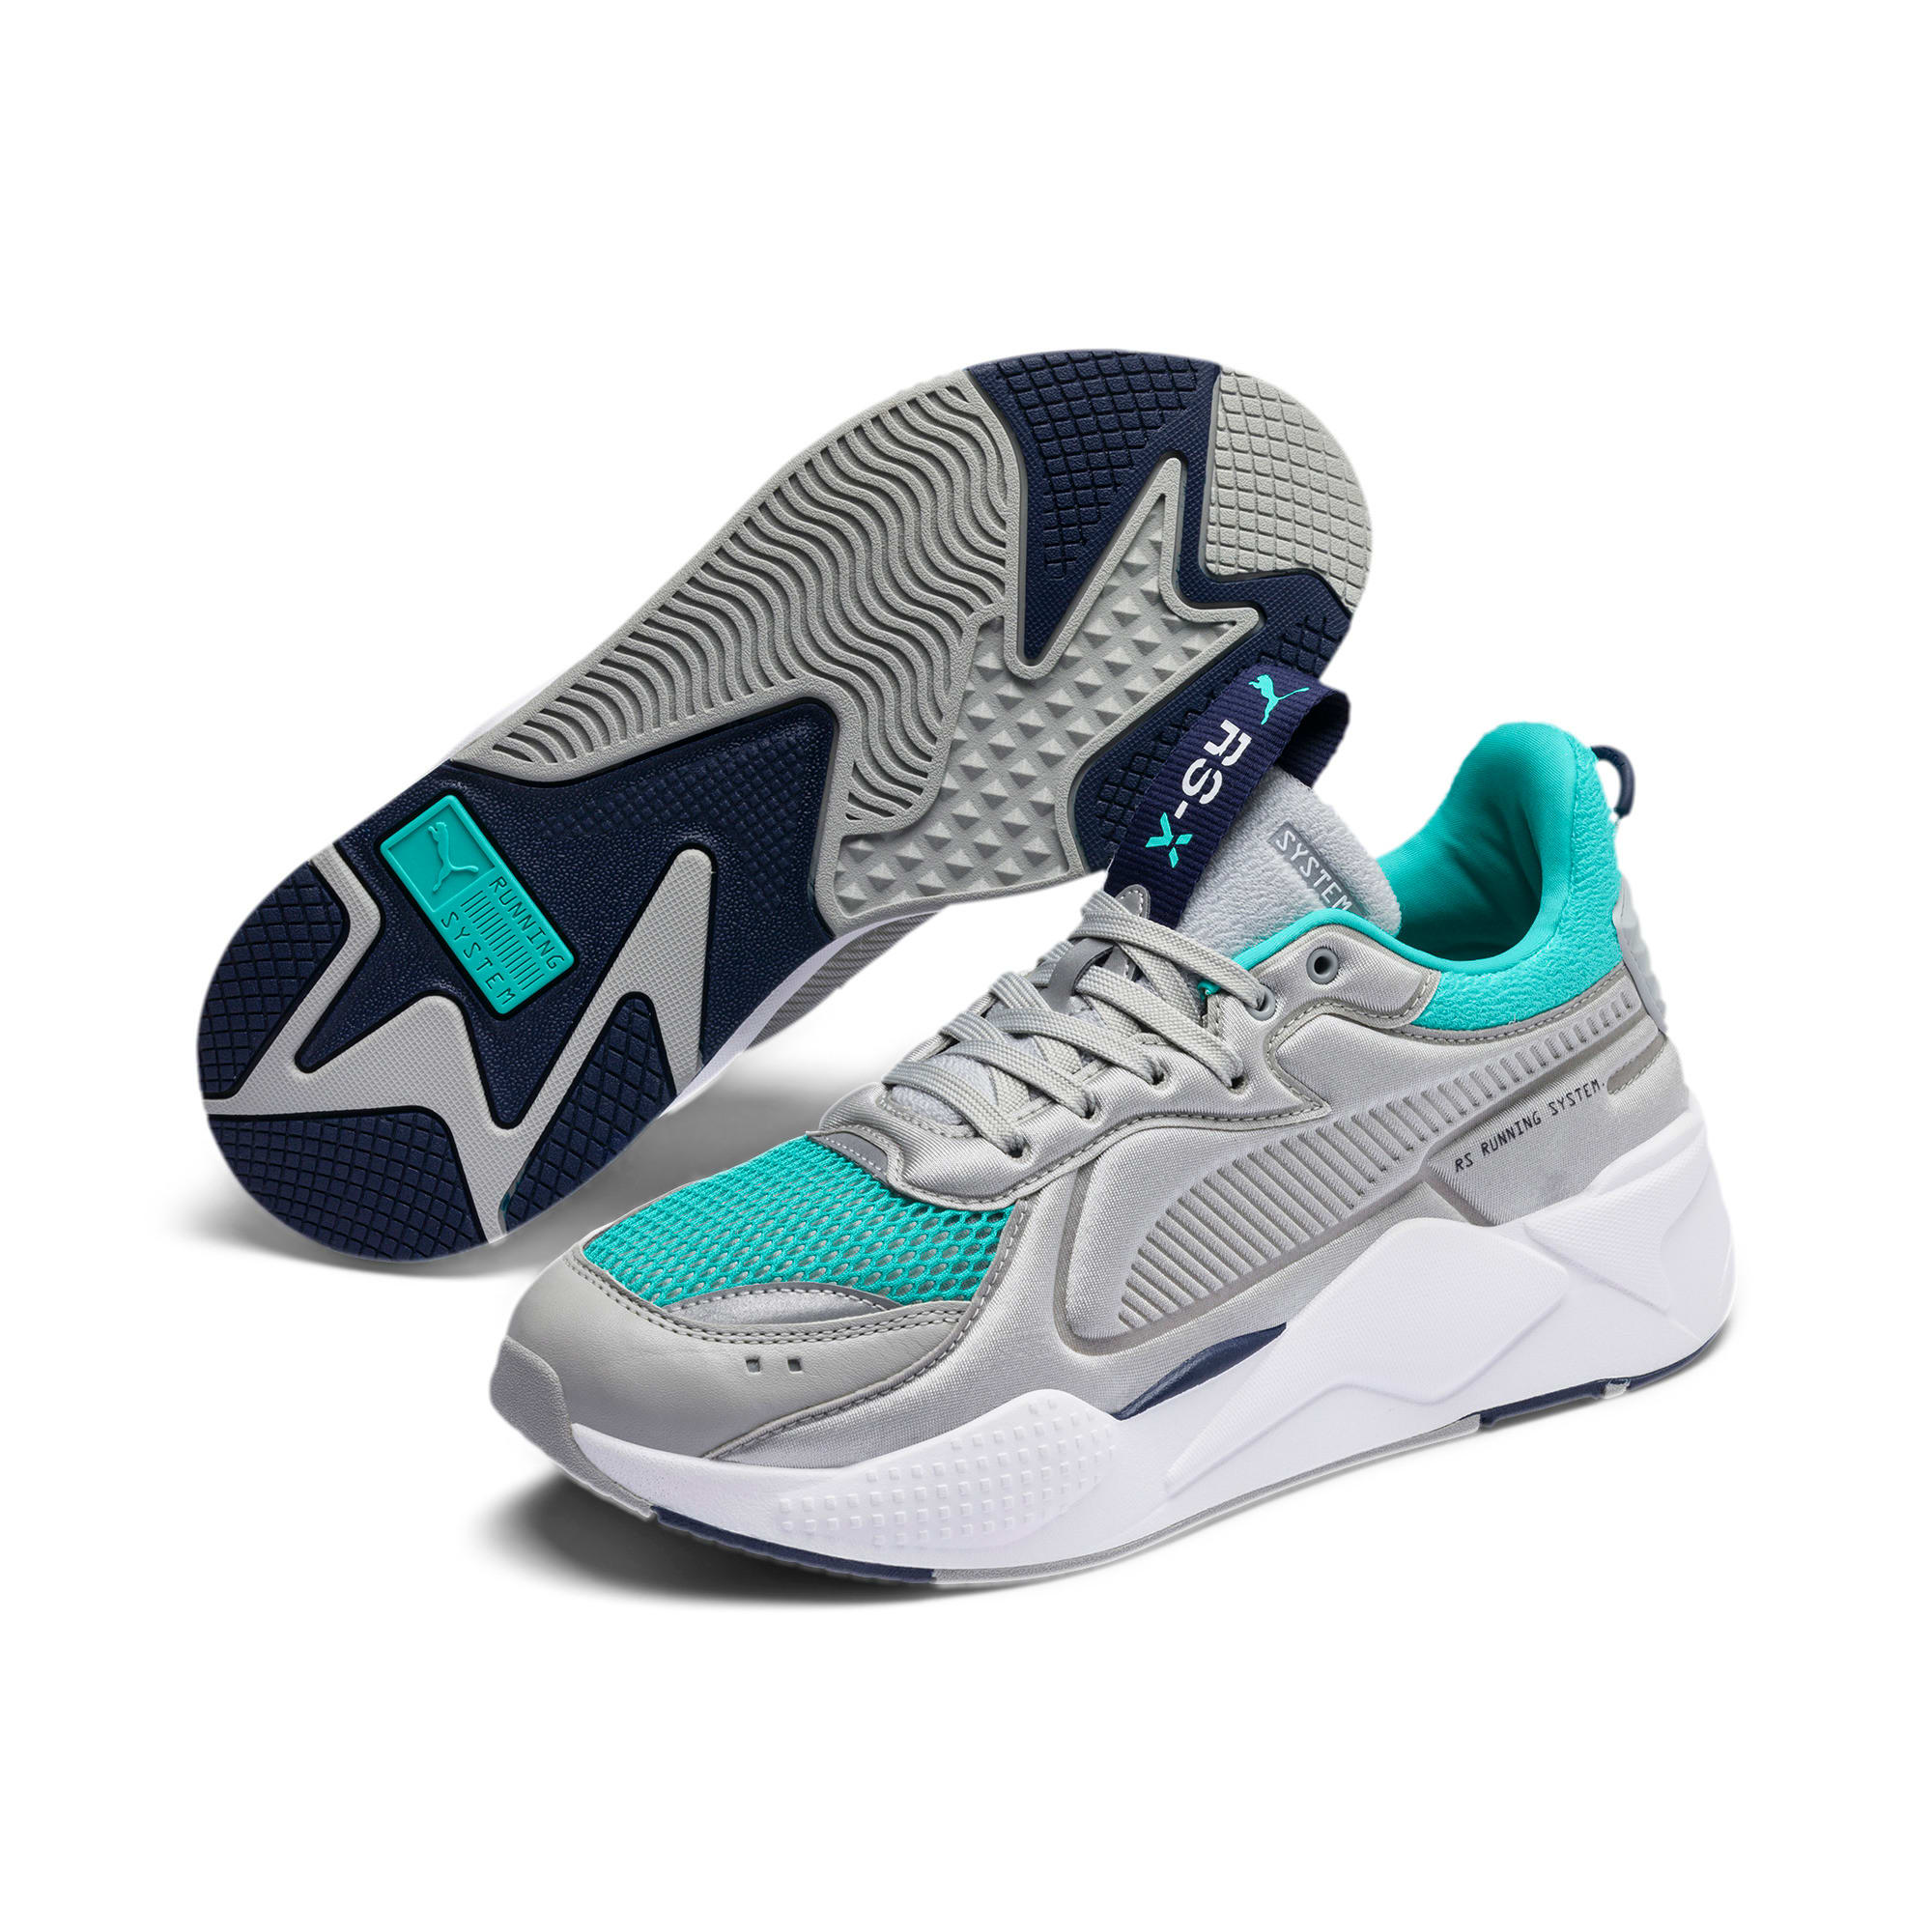 Thumbnail 2 of RS-X Softcase Sneakers, High Rise-Blue Turquoise, medium